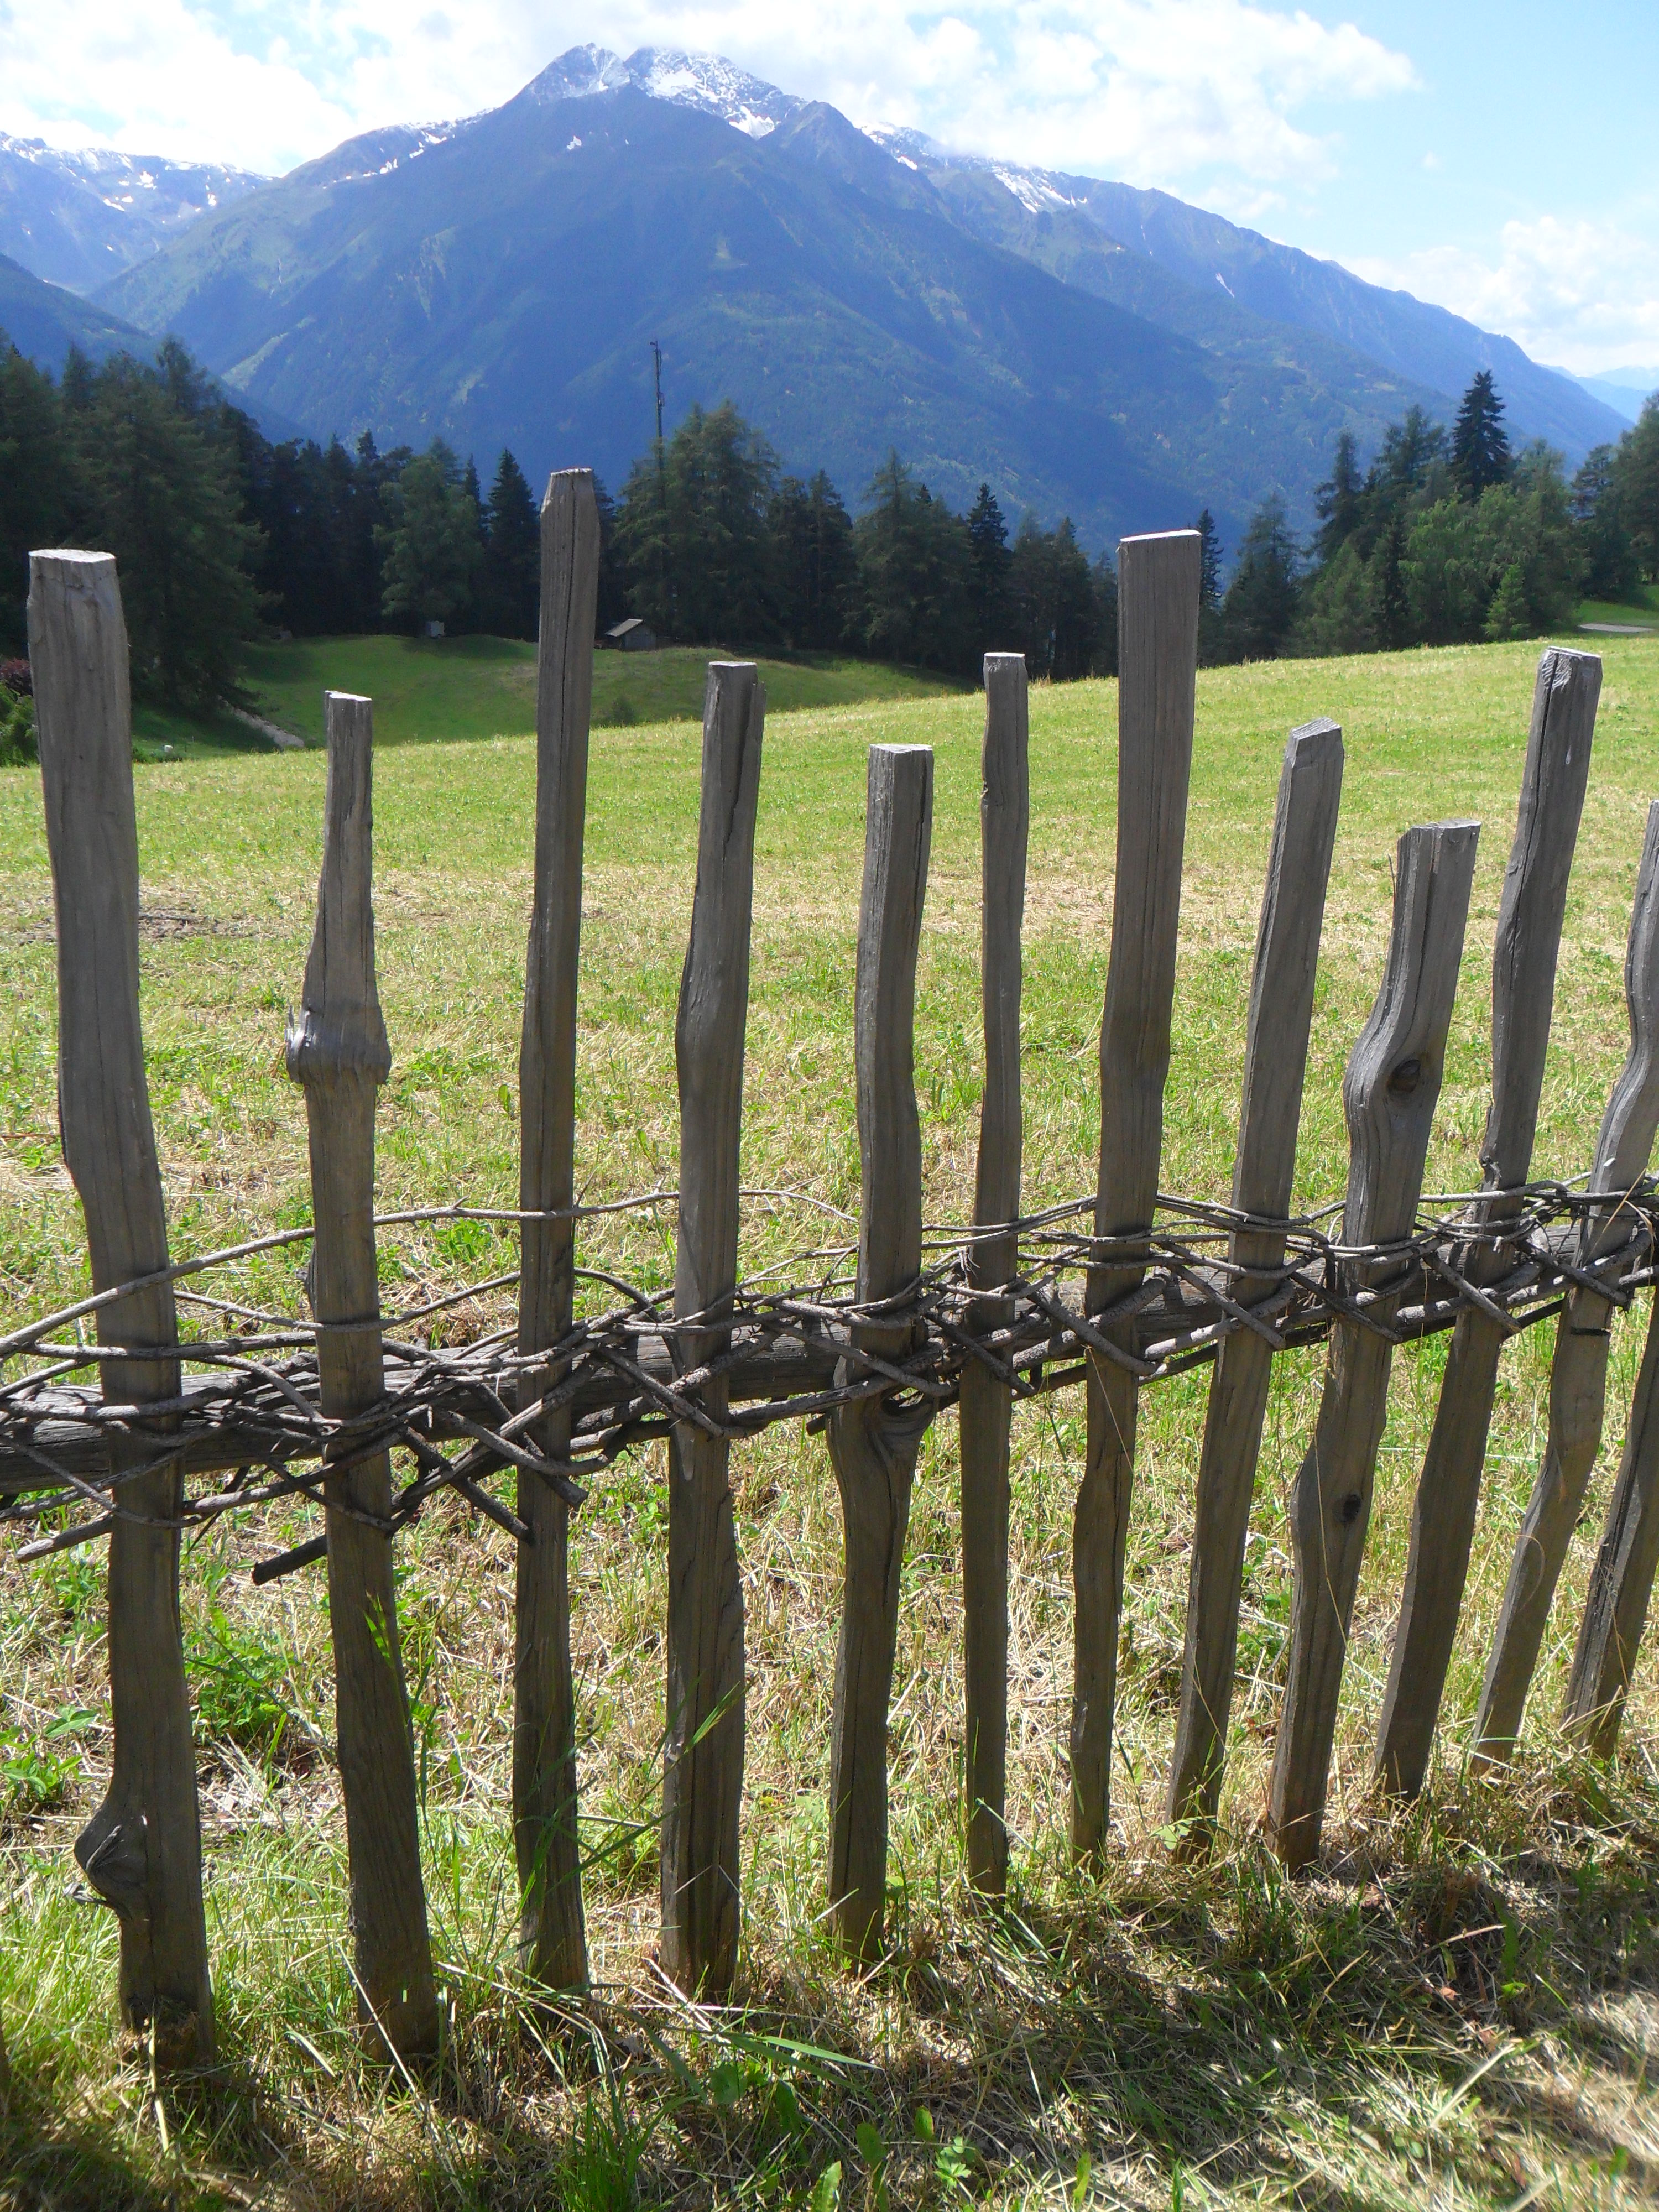 A traditionally-built fence in North Tyrol, Austria, July 2014.